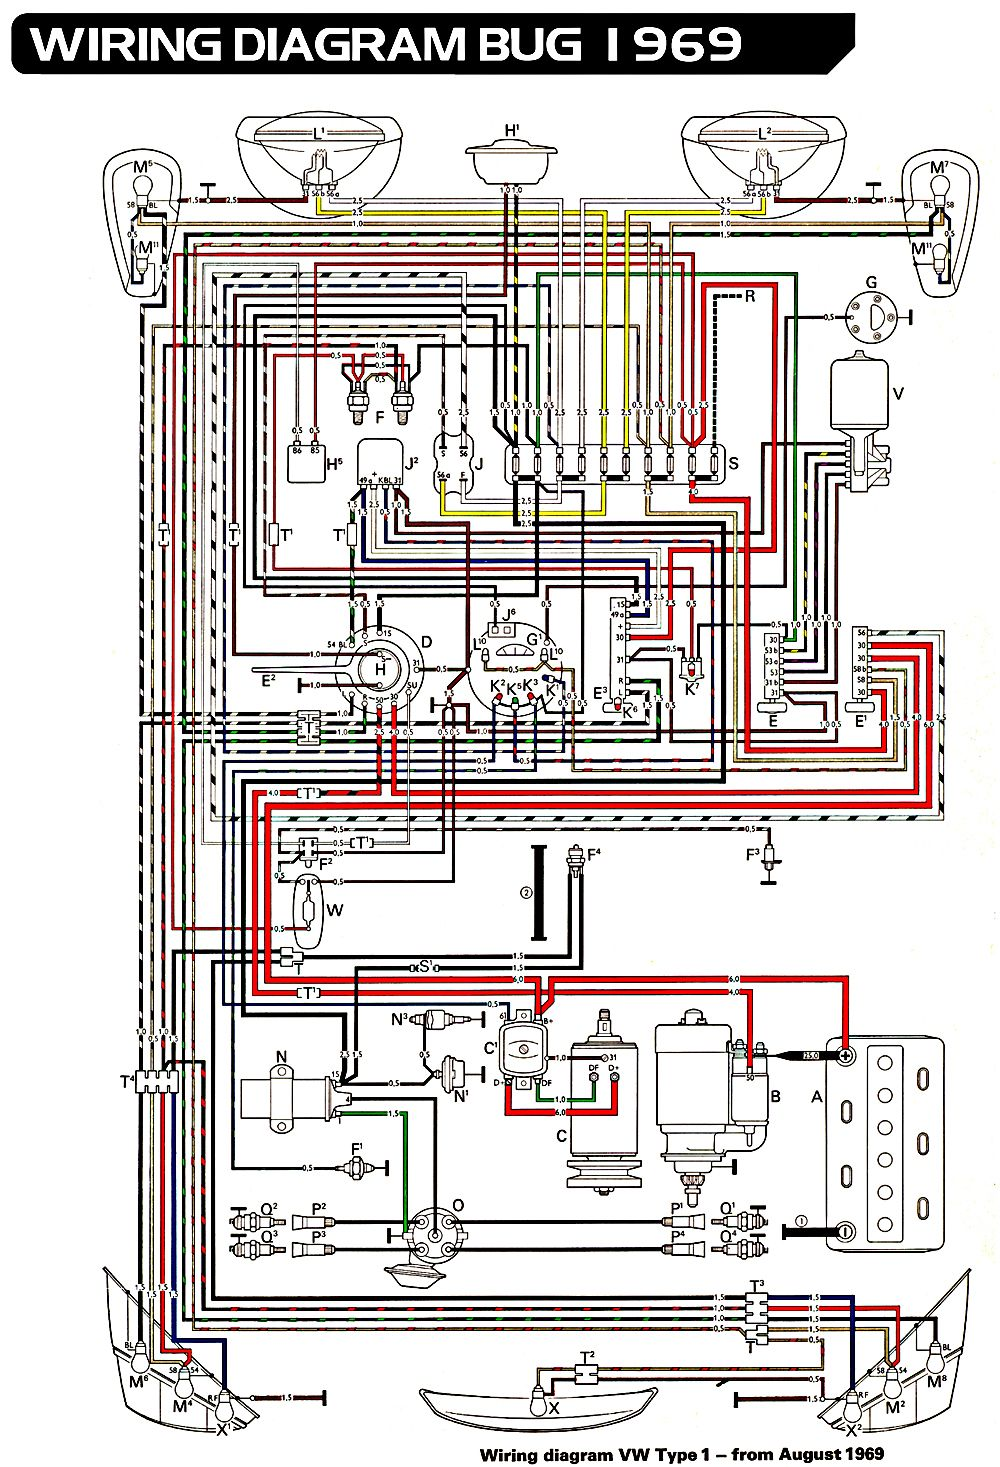 6d75c15875479254f26a32a8499d9044 volkswagen beetle wiring diagram 1966 vw beetle wiring vw bug wiring diagram at gsmx.co